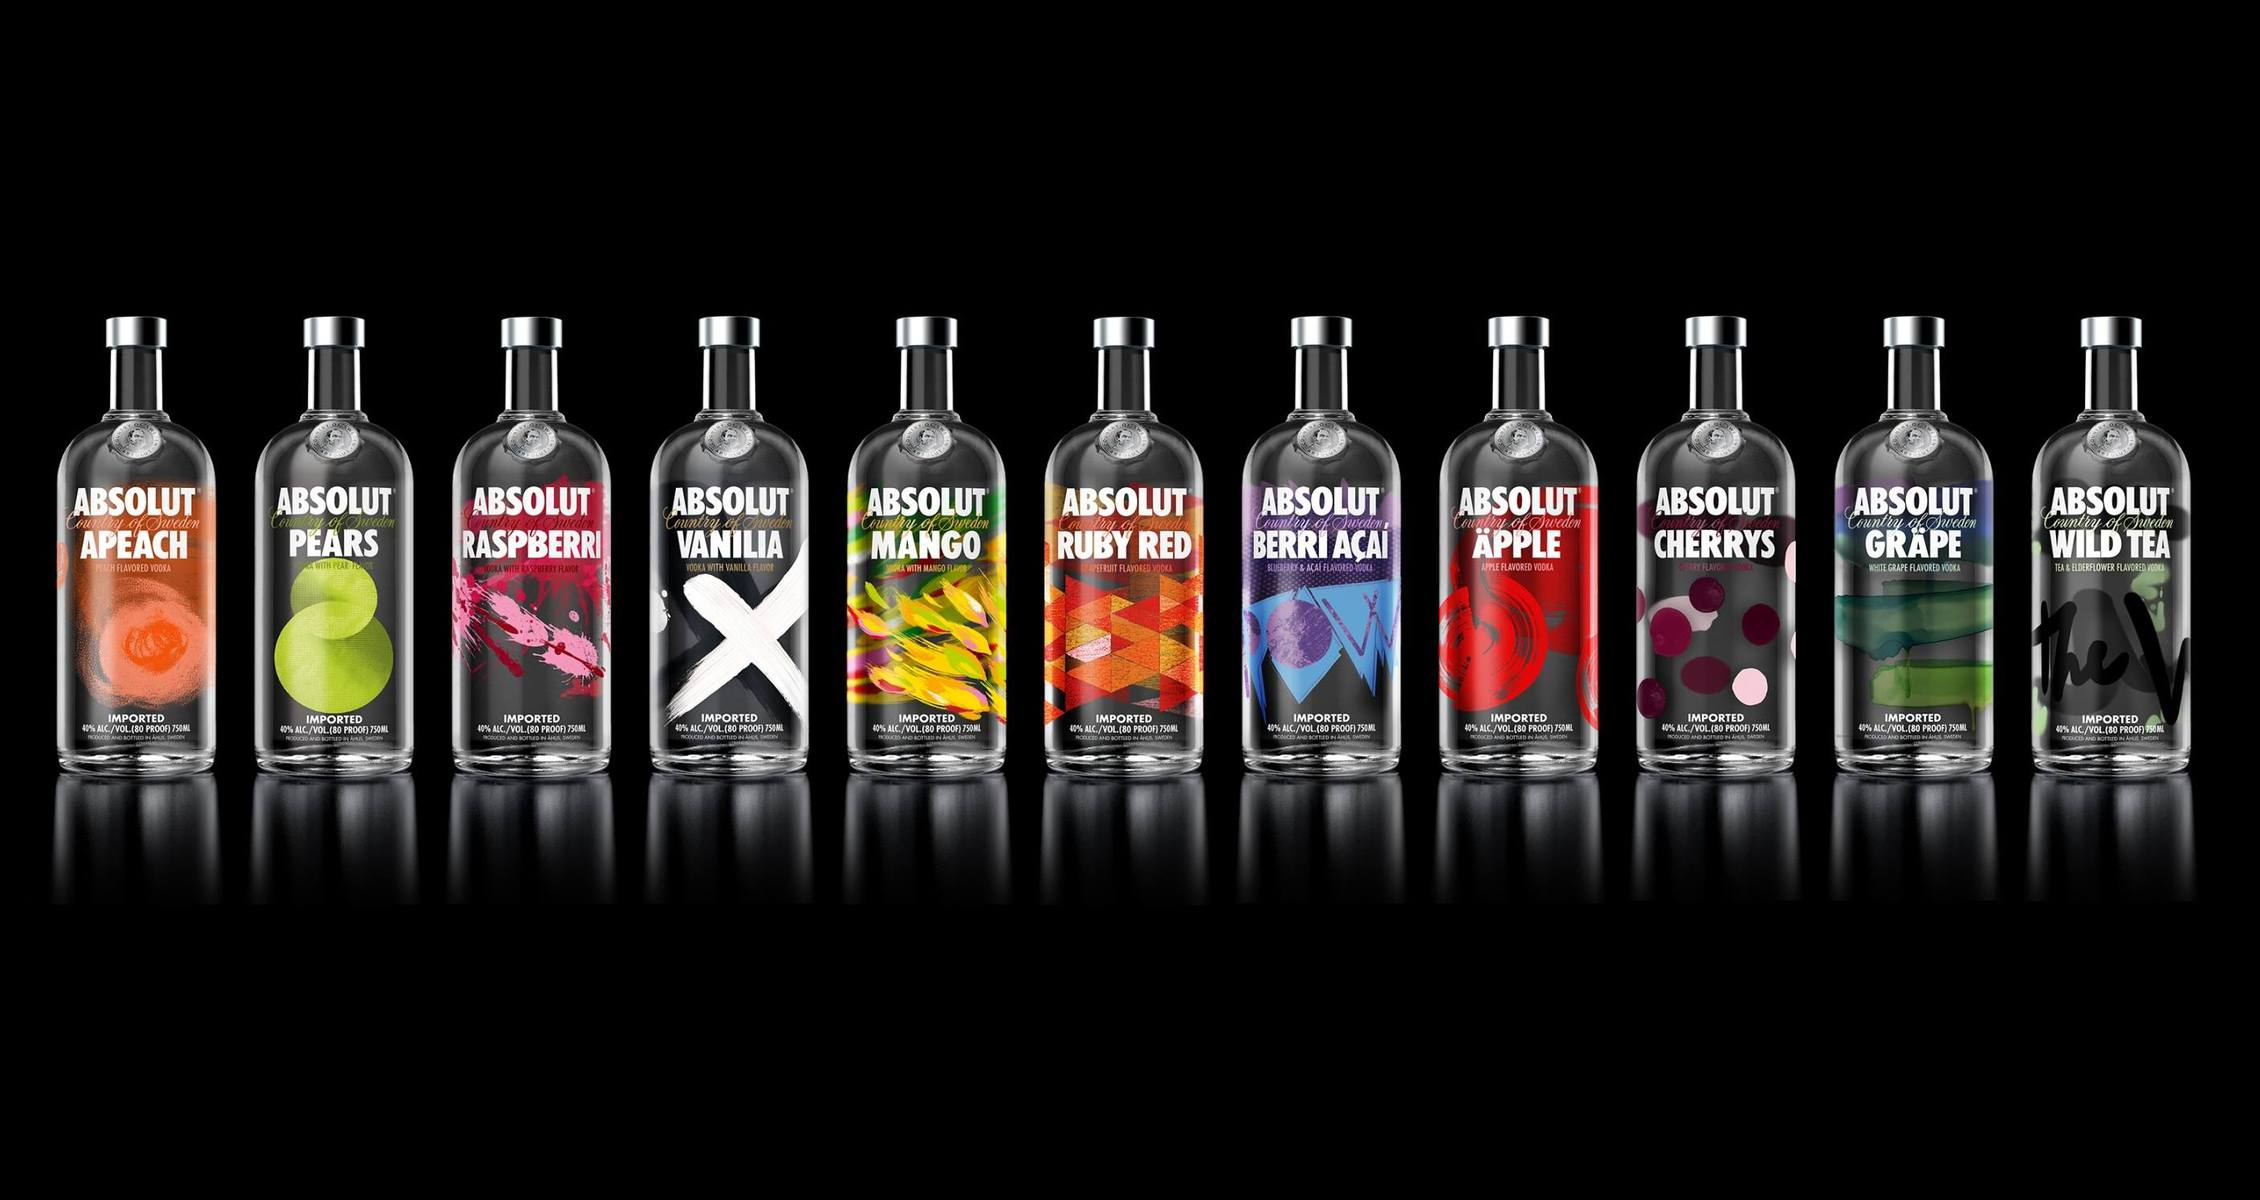 Marketing mix of Absolut Vodka